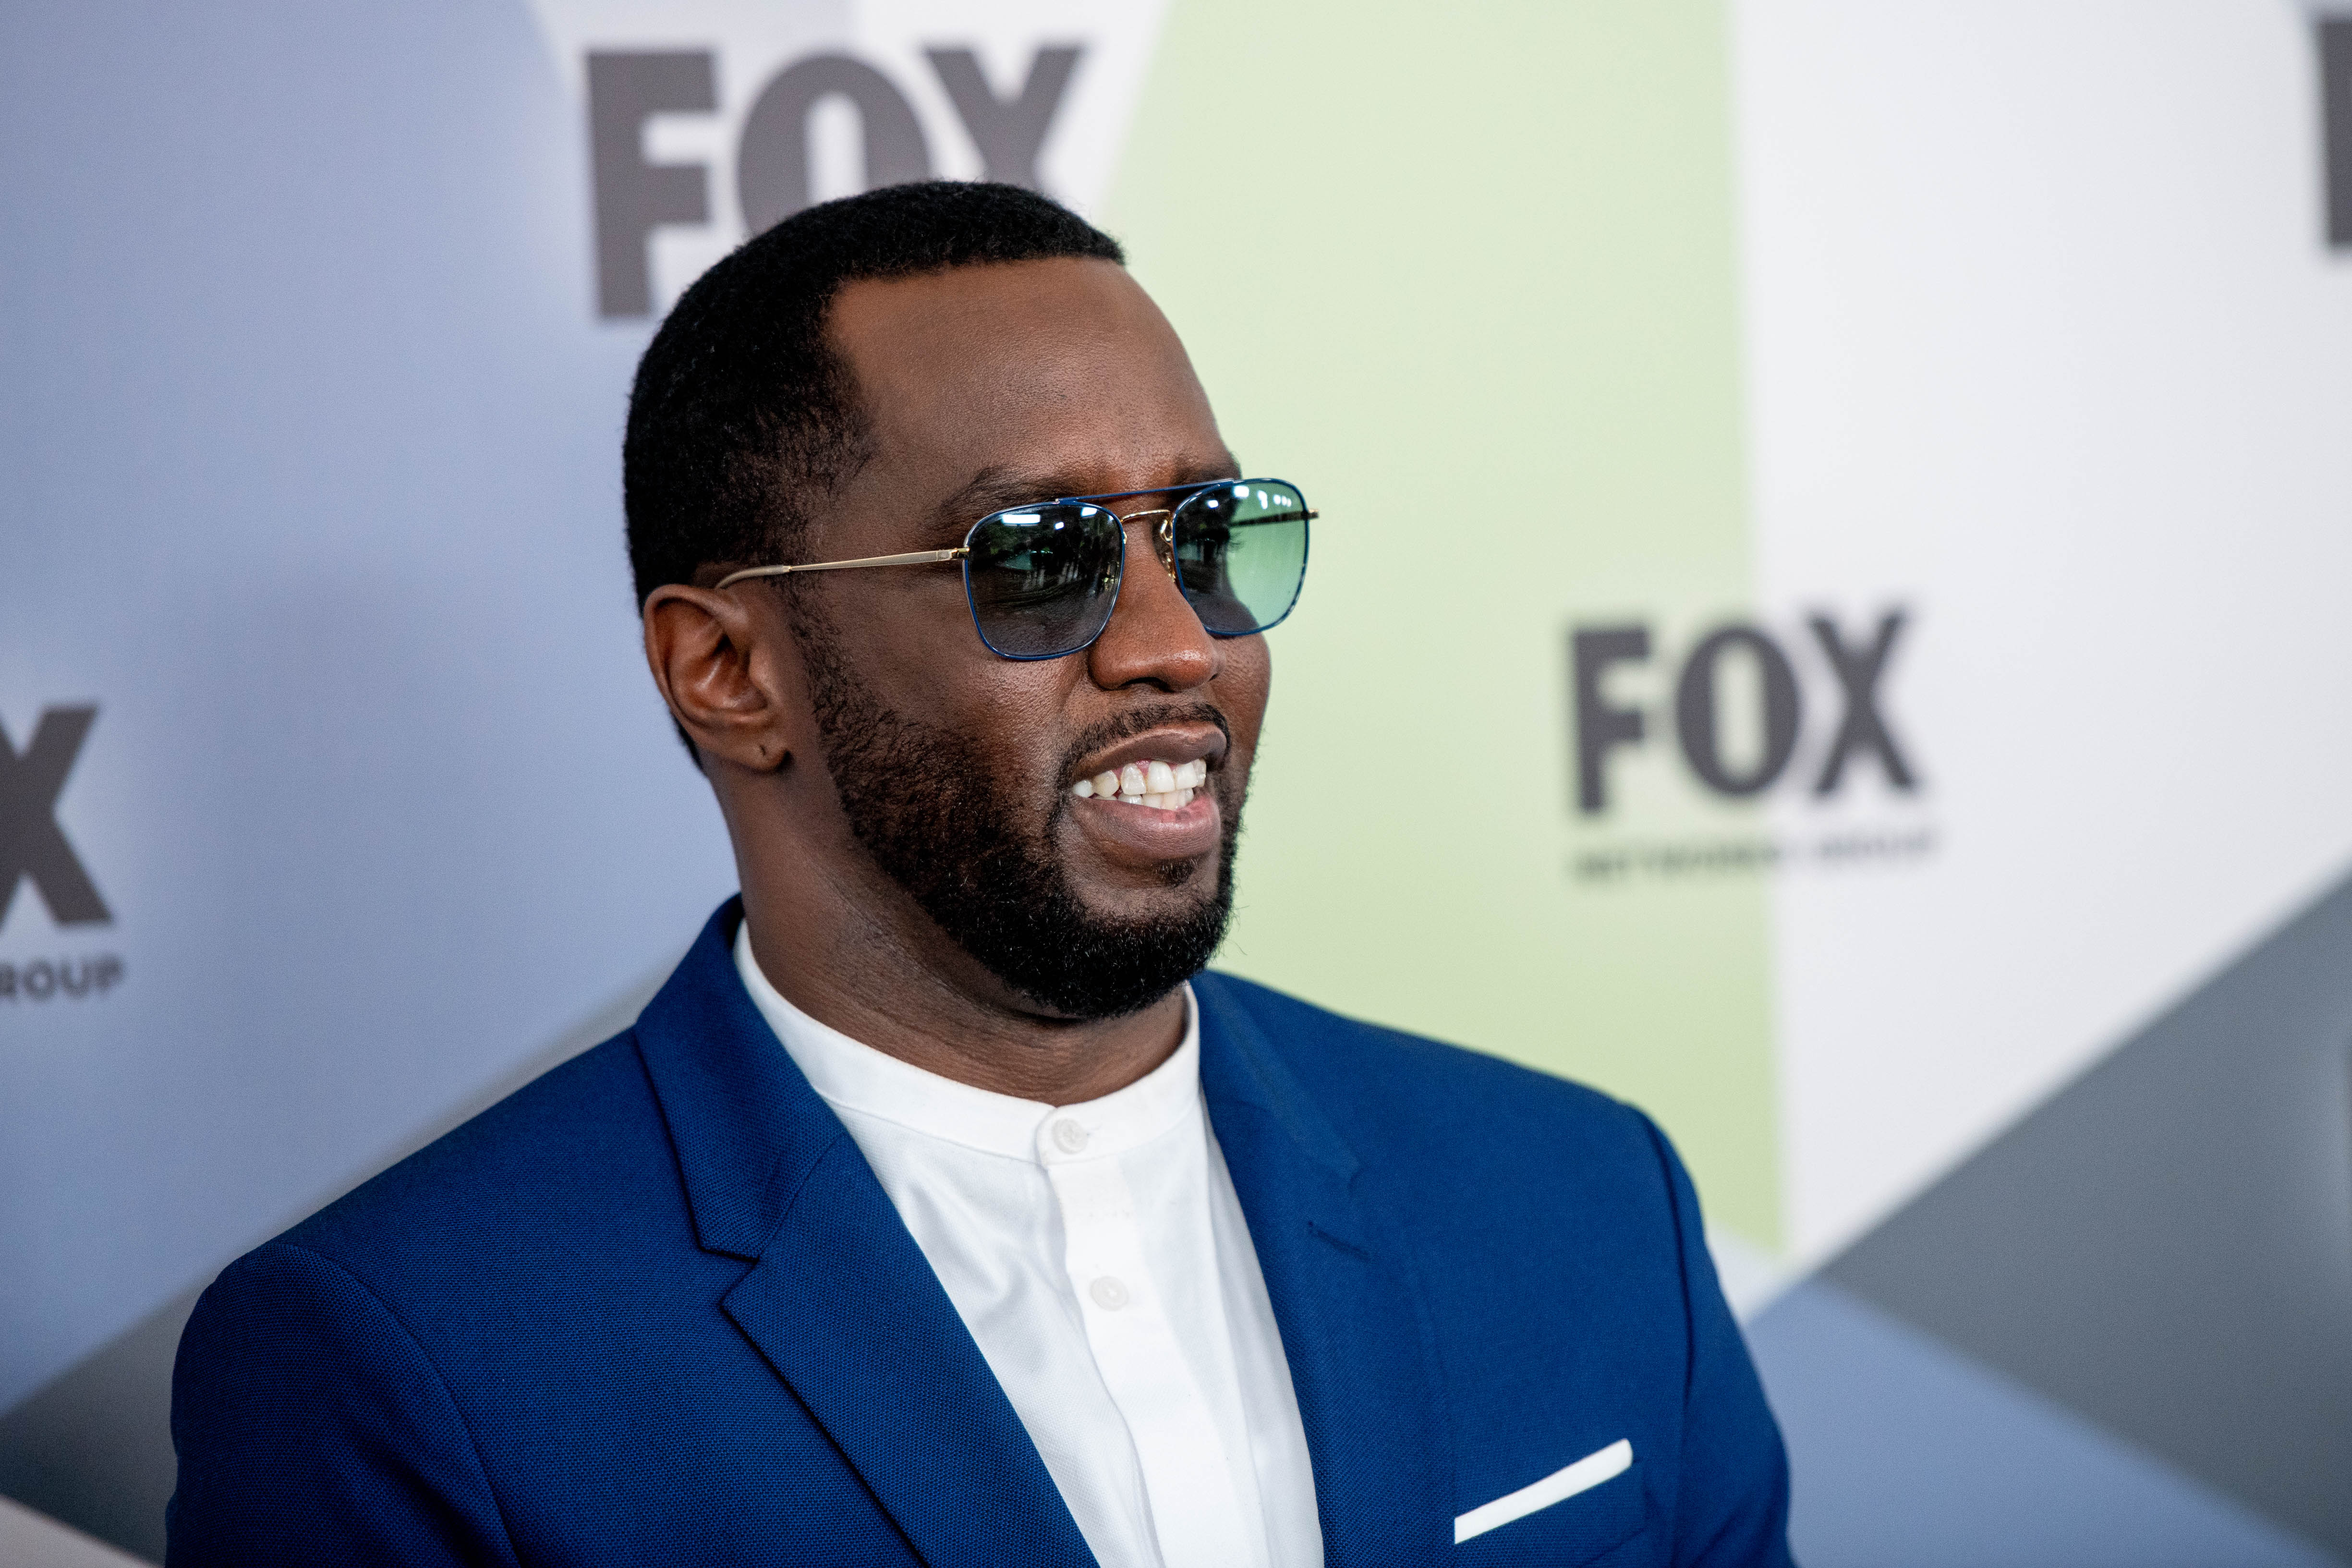 Sean Combs at the 2018 Fox Network Upfront on May 14, 2018 in New York City.|Source: Getty Images